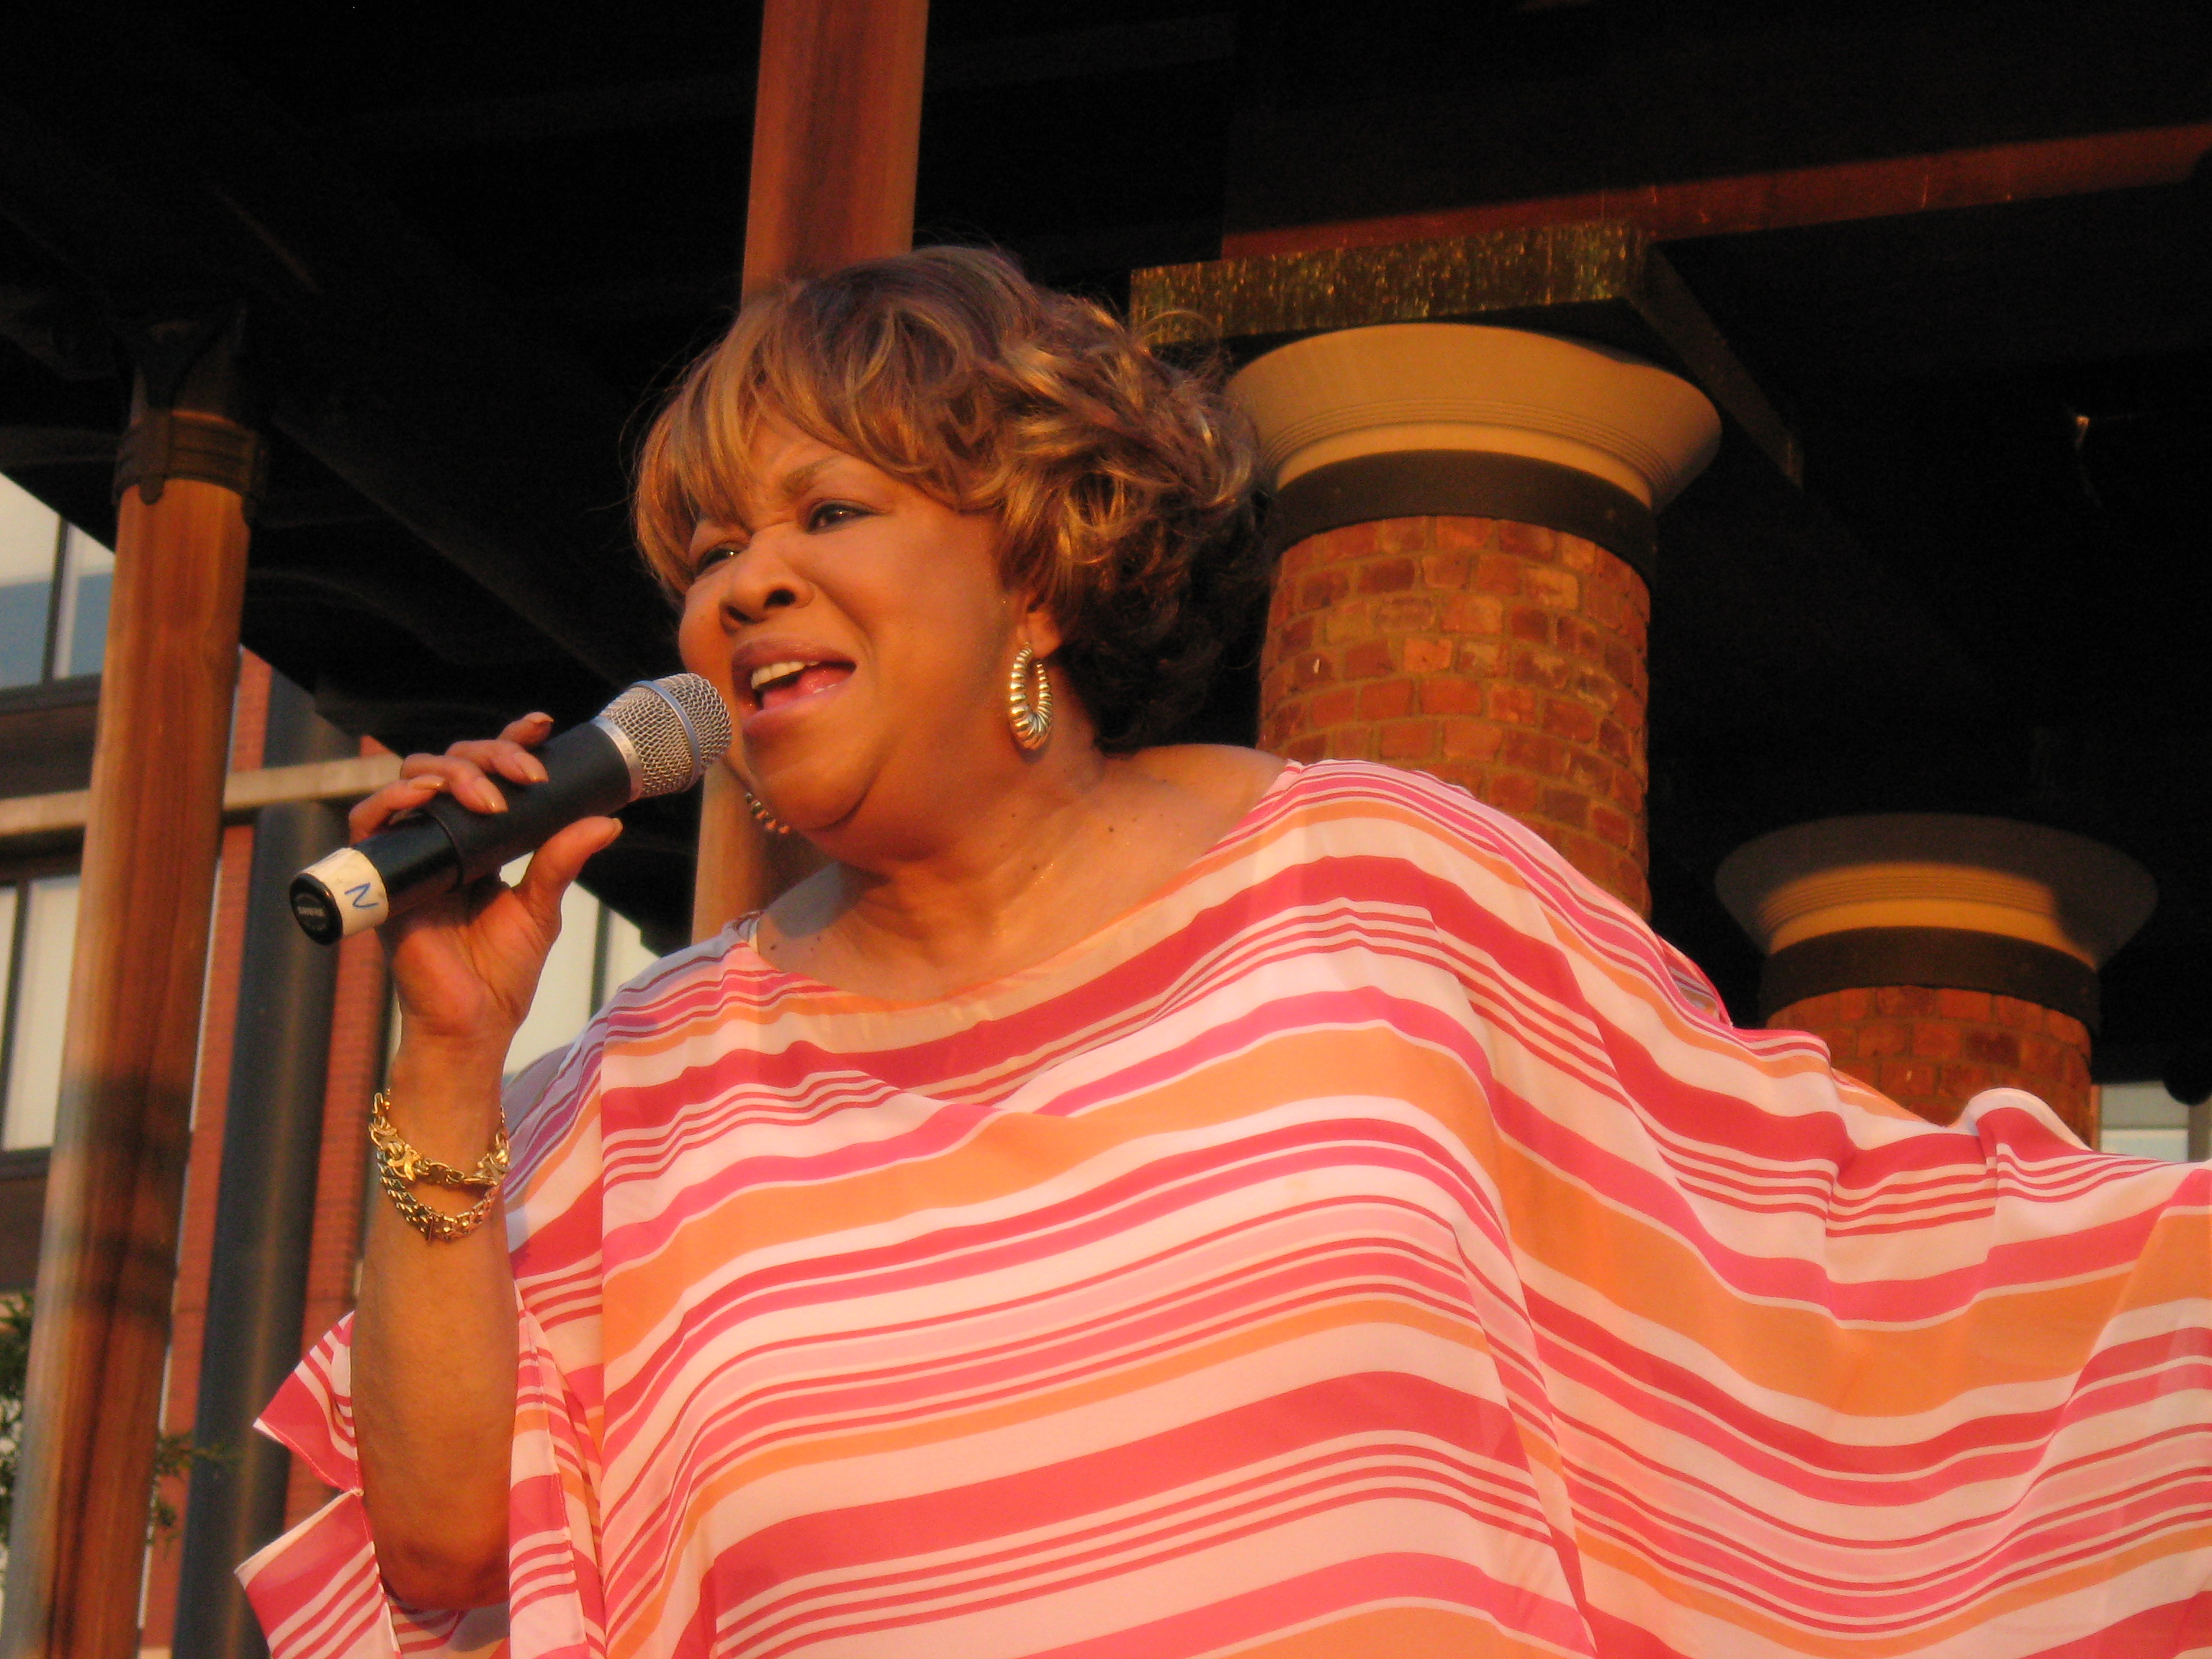 File:Mavis Staples.jpg